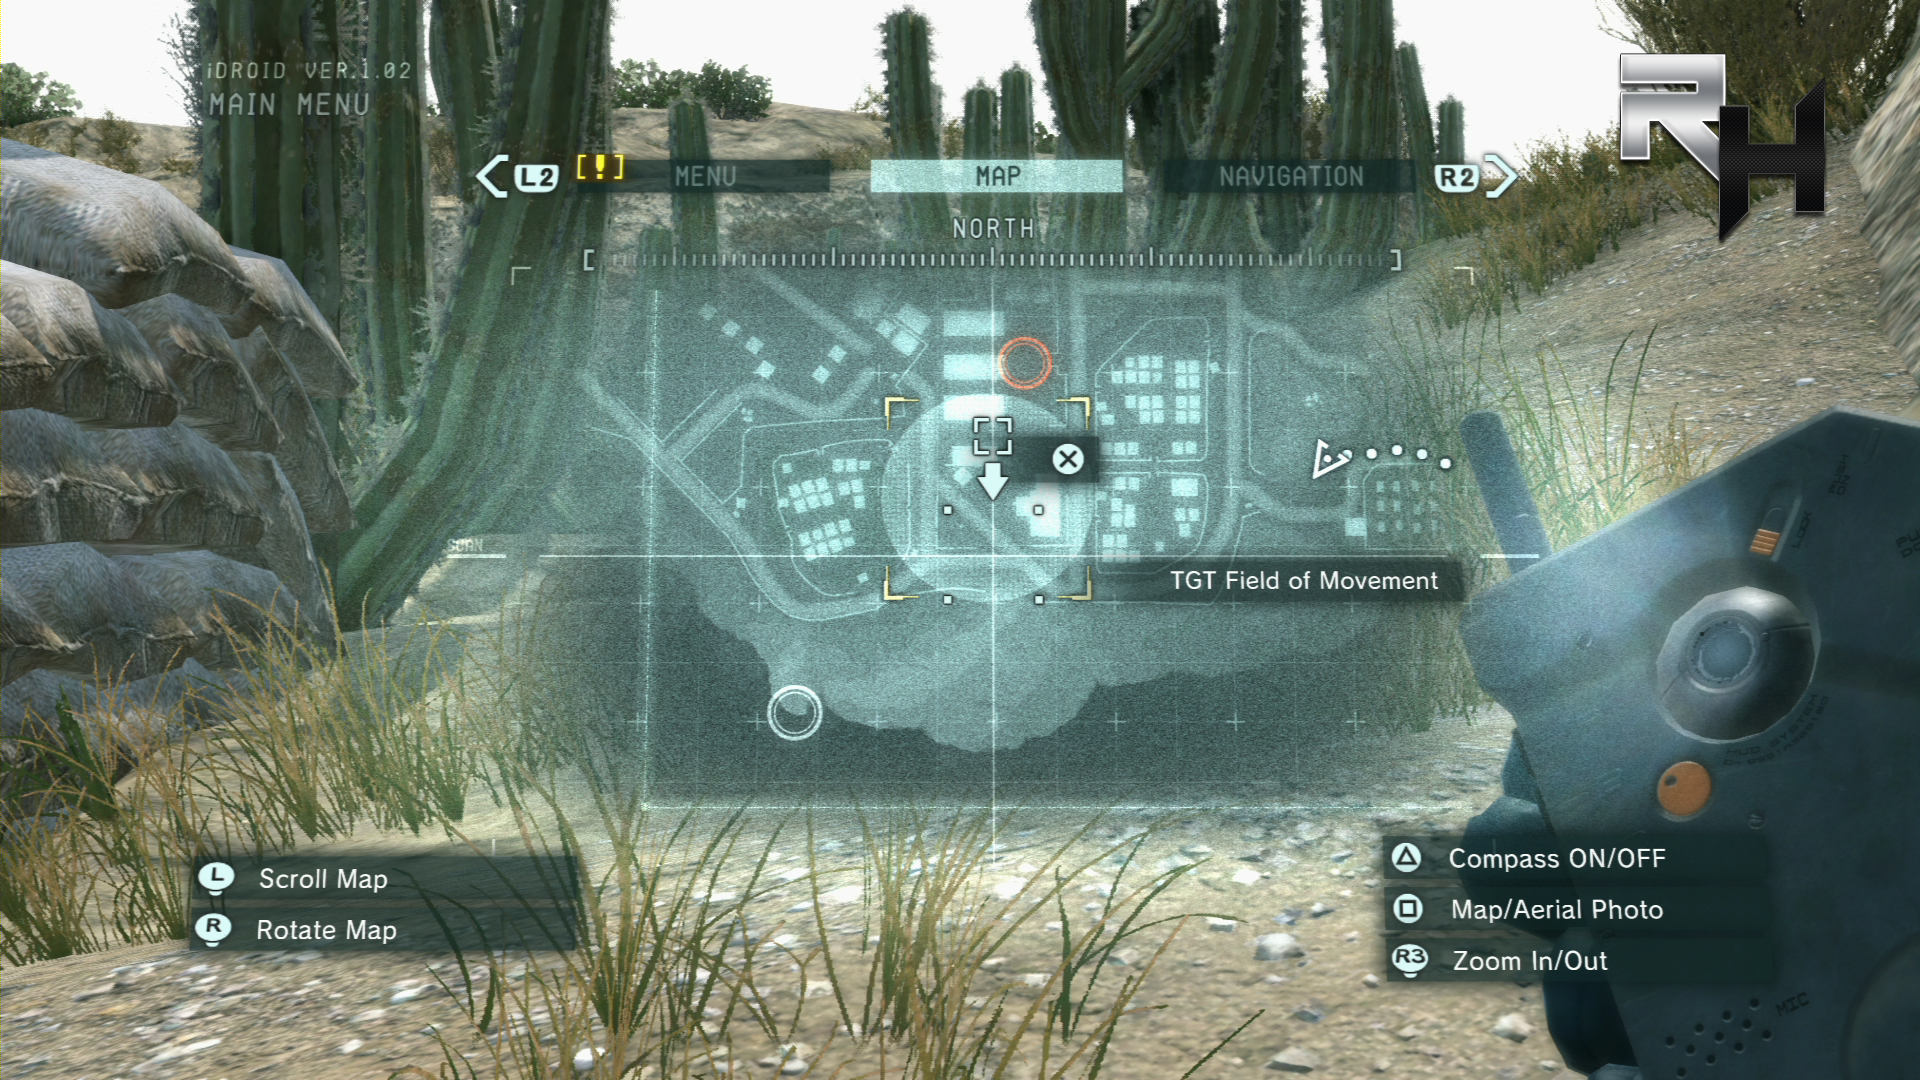 Some missions can take place during the day - and lighting matters a lot in Ground Zeroes. You'll be much easier to spot!